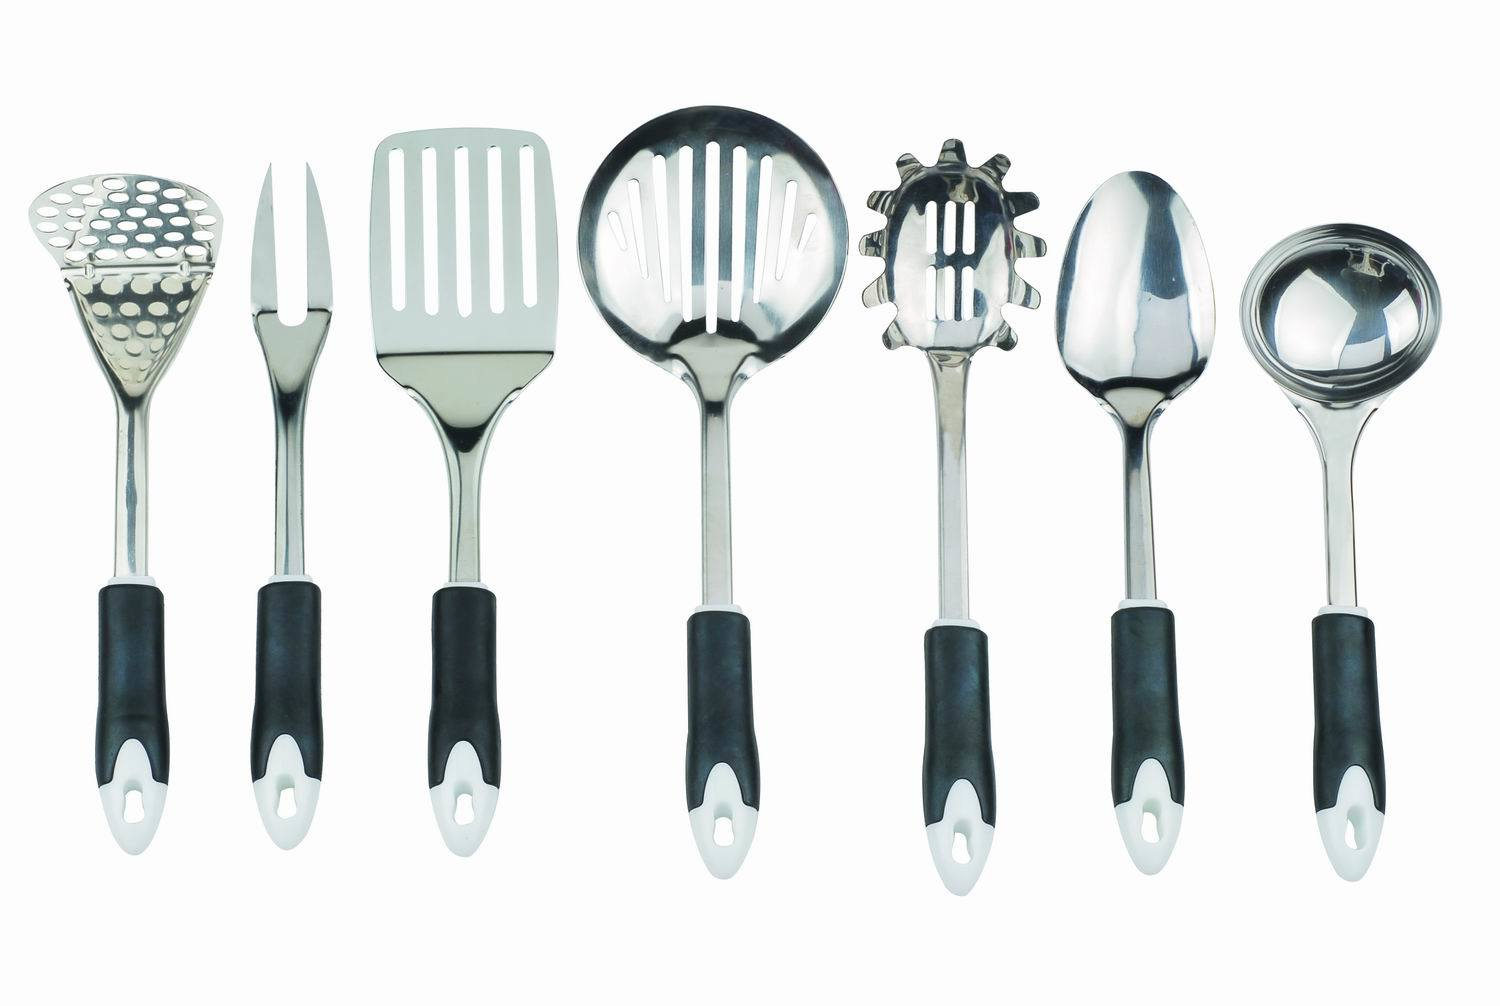 utensils kitchen tool cooking utensils syu030 china utensils kitchen